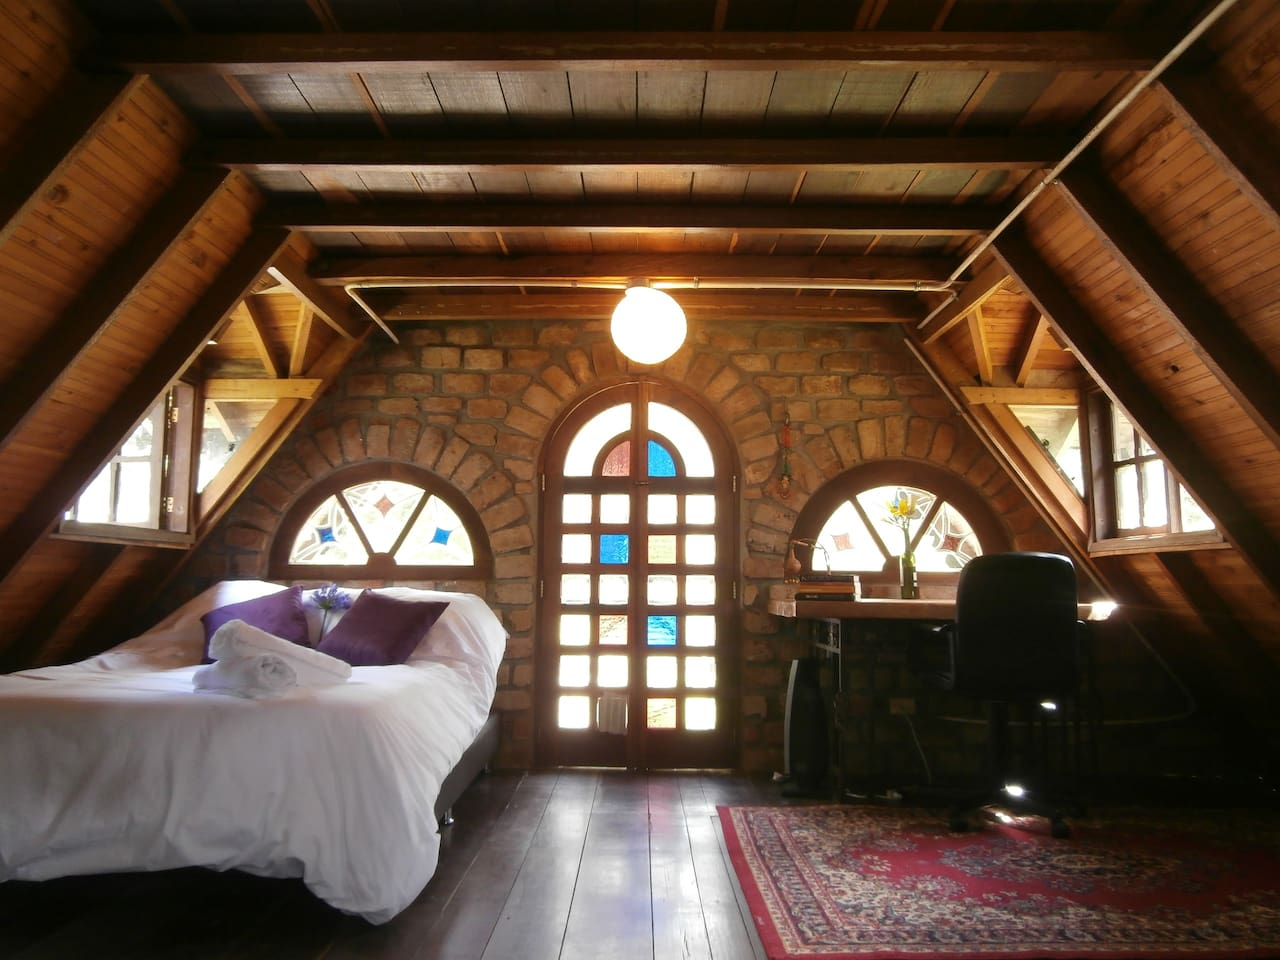 The Gingerbread House's bedroom with stained glass windows, views over the mountains, a wonderful work space, comfy bed and large balcony looking over the front yard